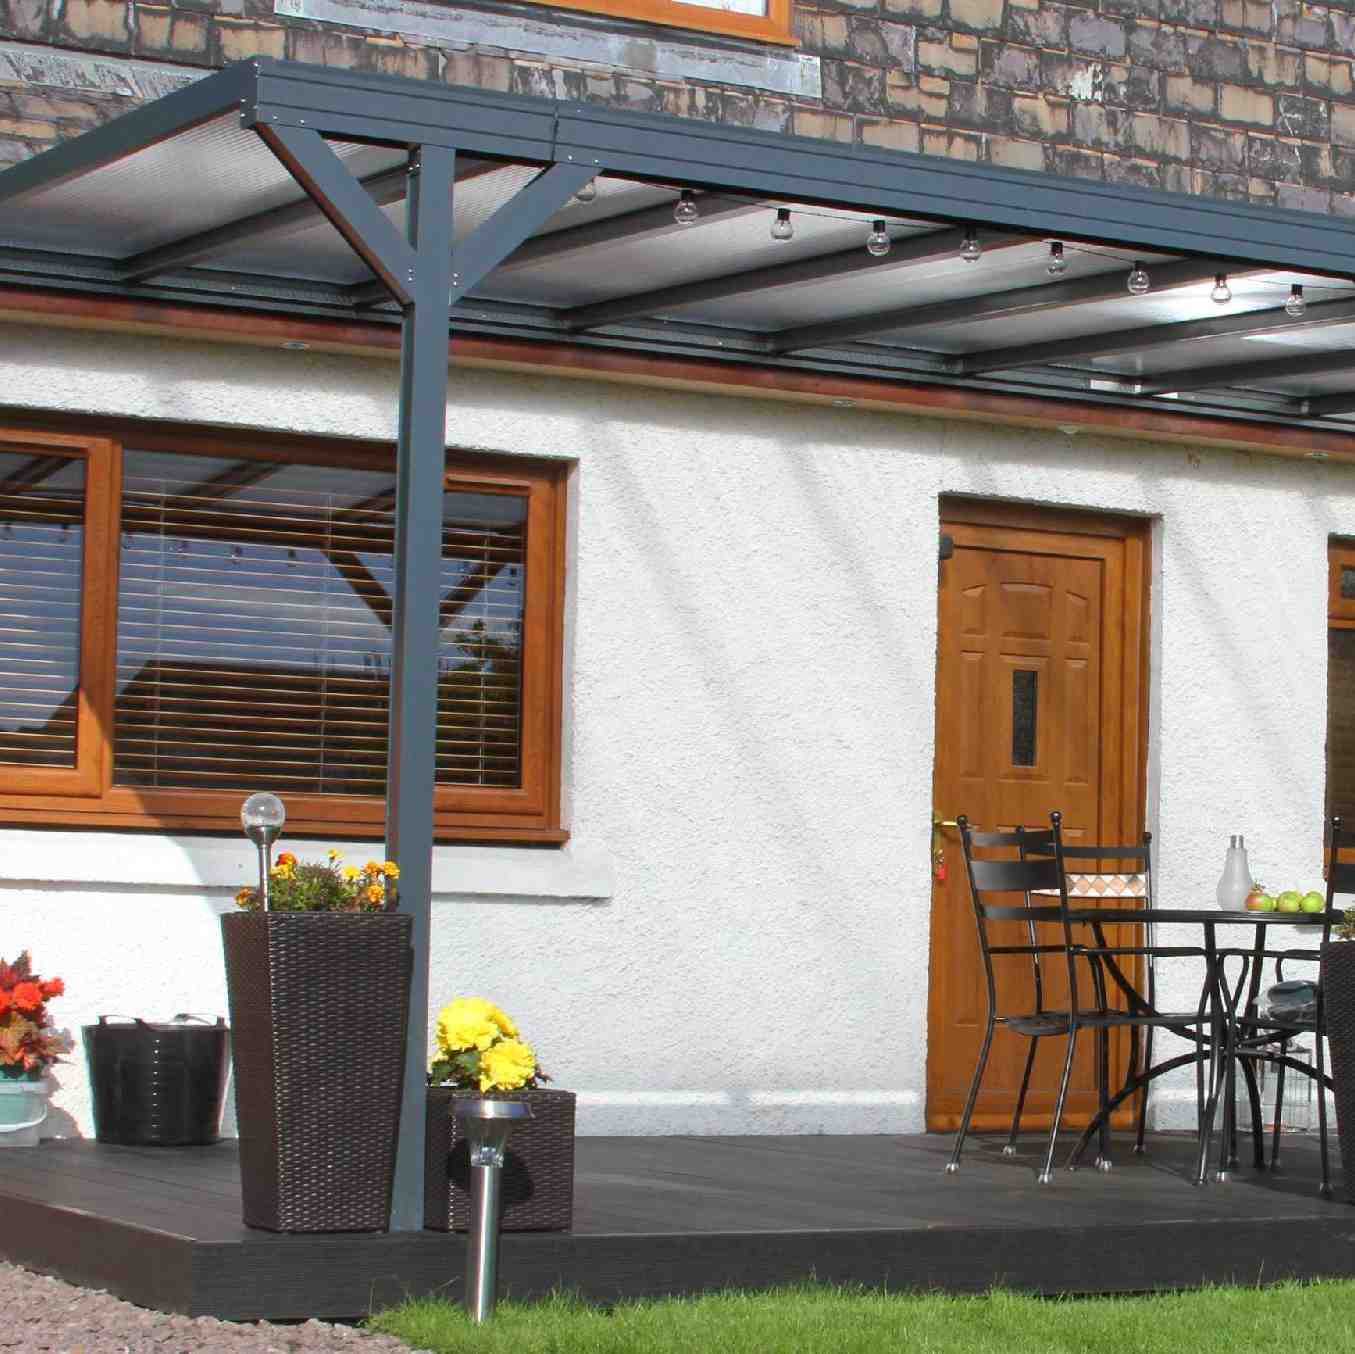 Omega Verandah, Anthracite Grey, 16mm Polycarbonate Glazing - 2.8m (W) x 3.5m (P), (2) Supporting Posts